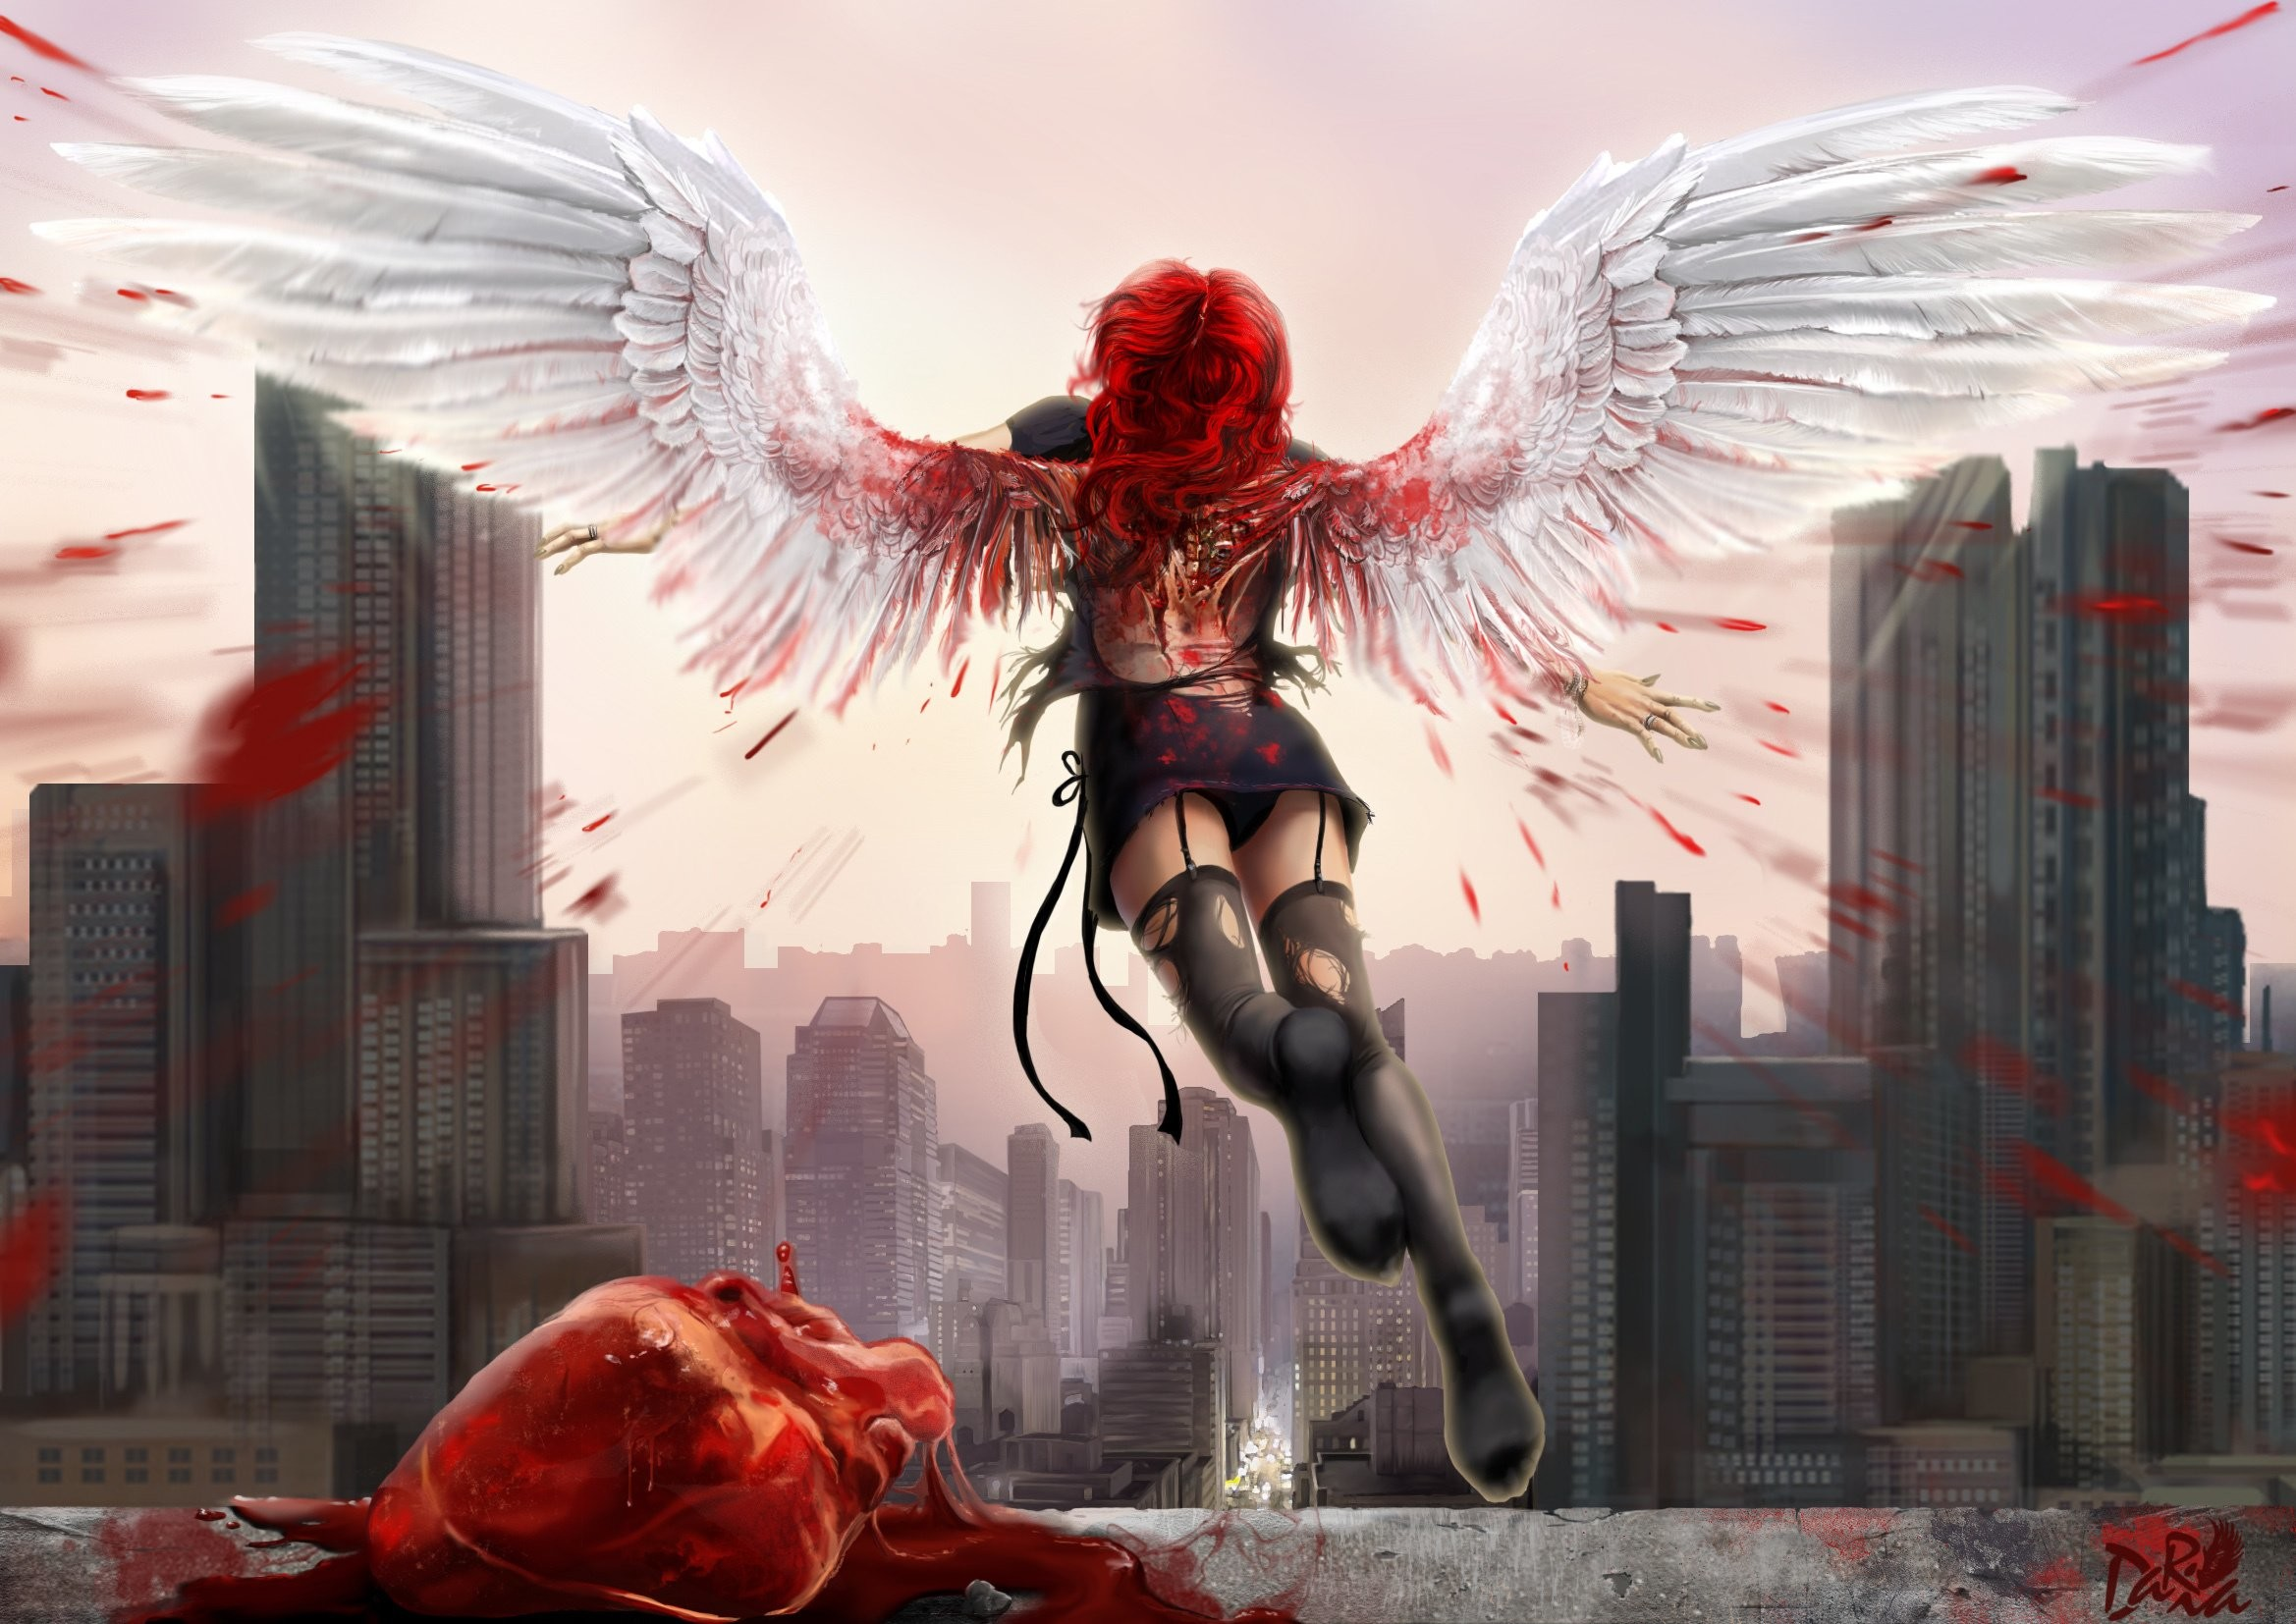 2338x1654 Arts Wings Darianaloki Heart Blood City Angel Girls Wallpaper At Dark  Wallpapers